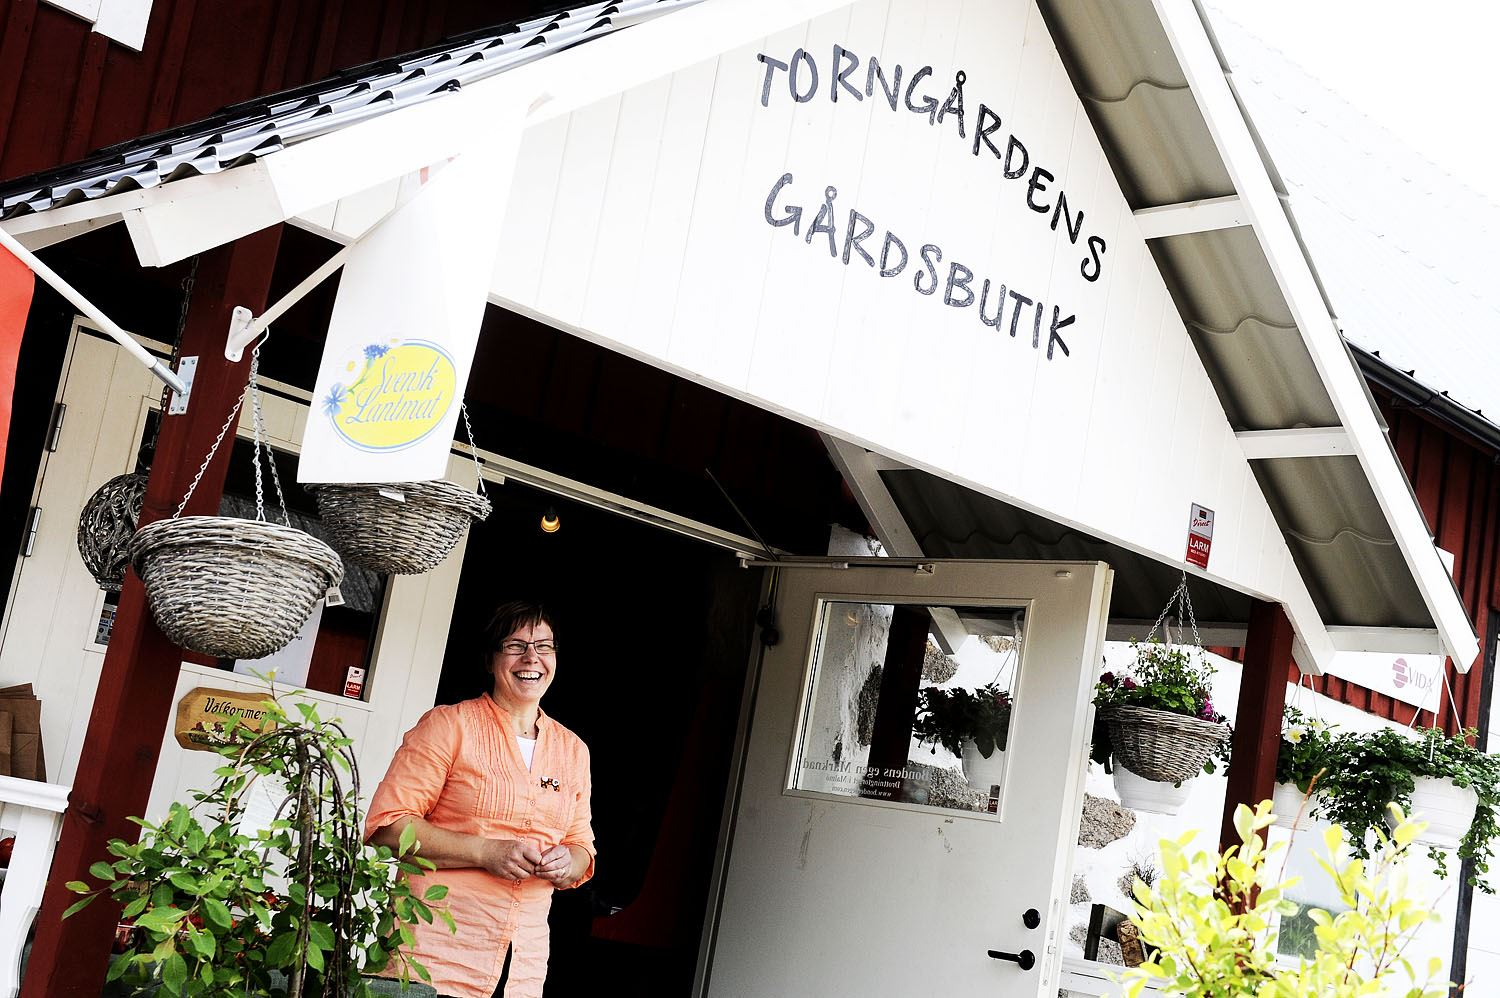 Torngårdens farm shop